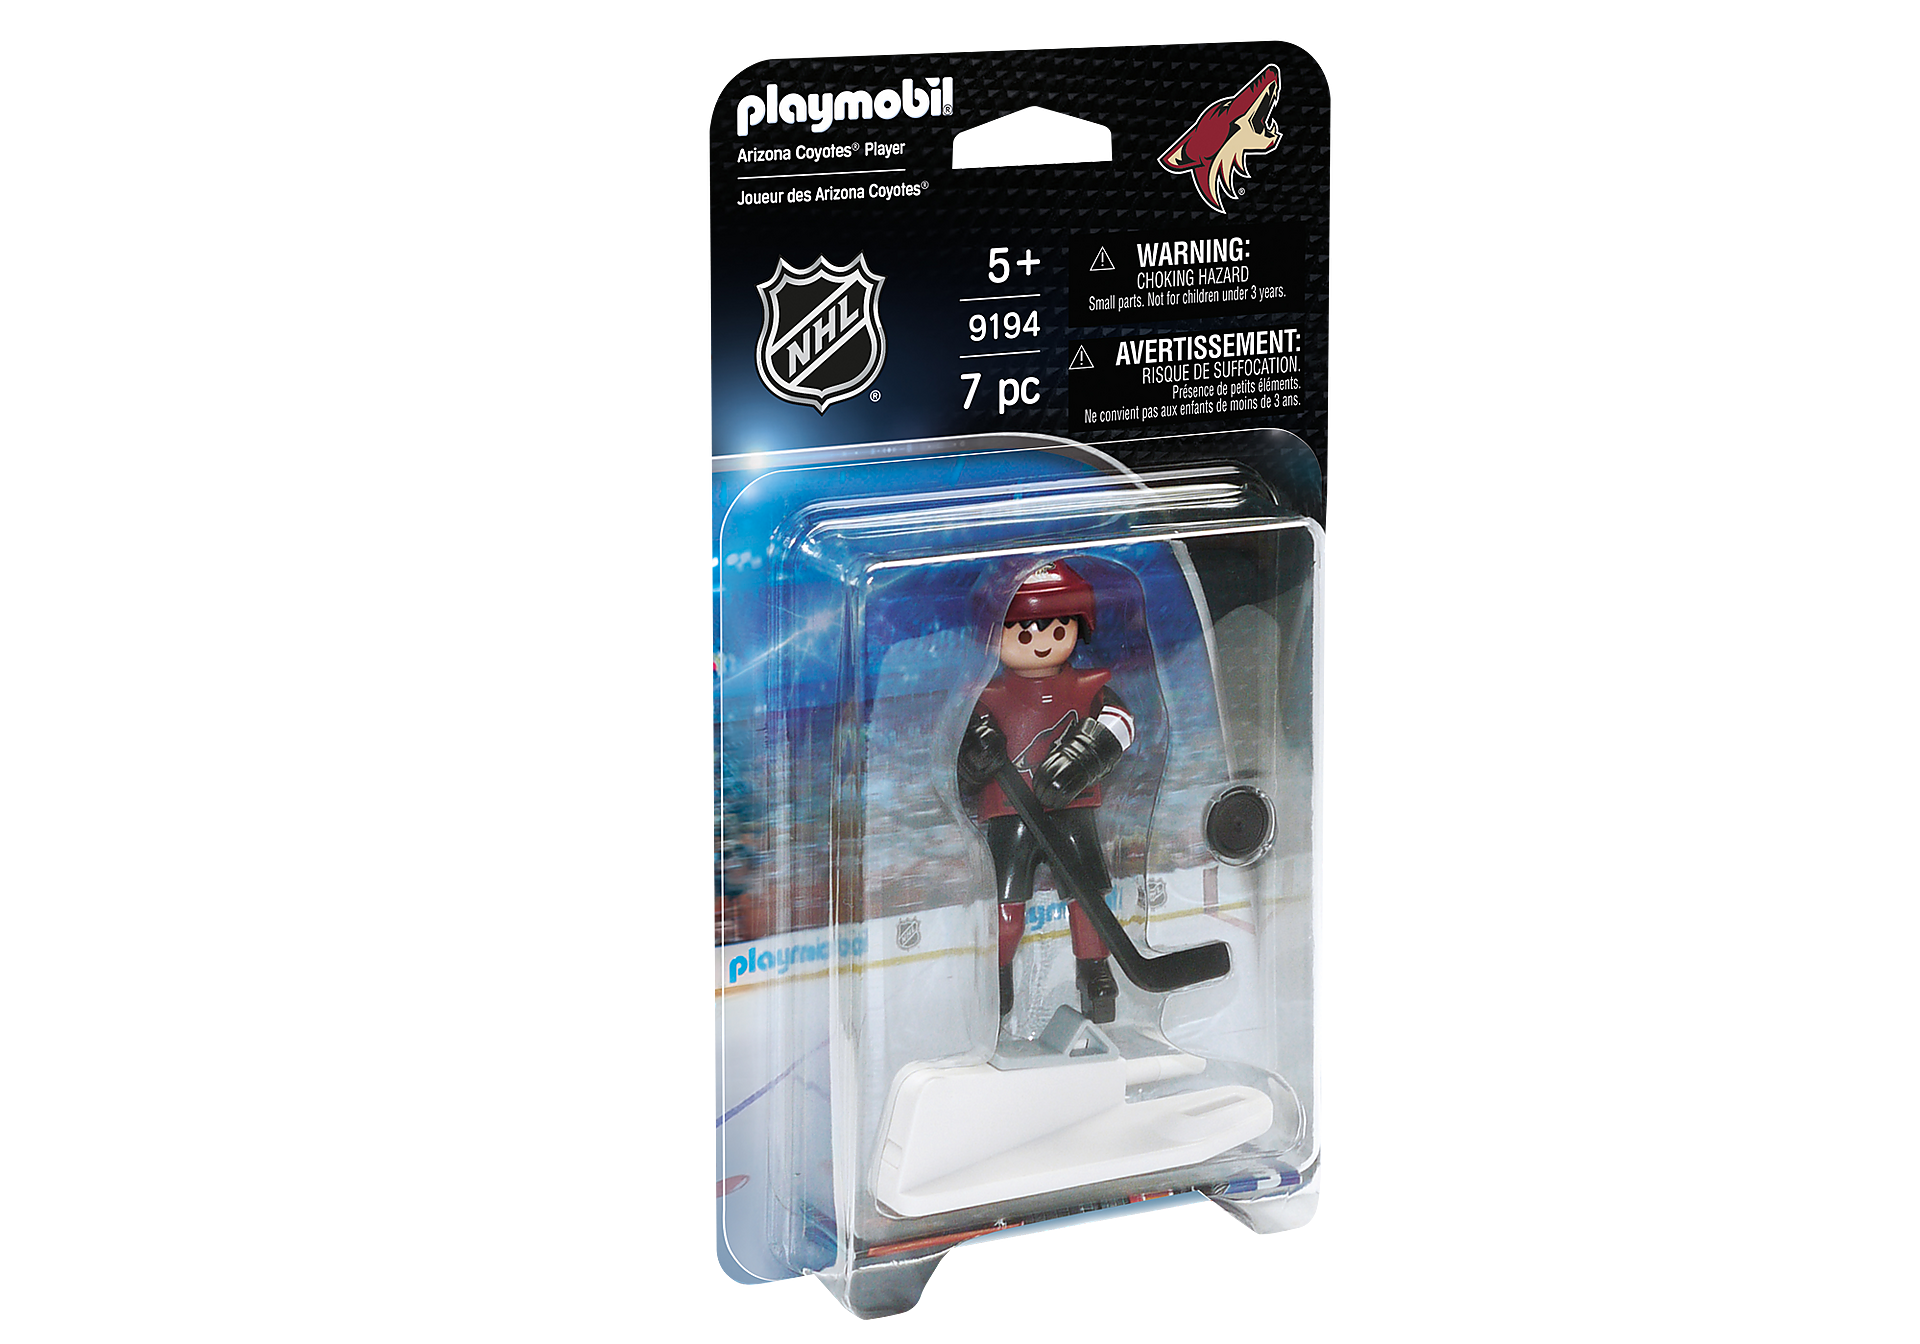 http://media.playmobil.com/i/playmobil/9194_product_box_front/NHL® Arizona Coyotes® Player